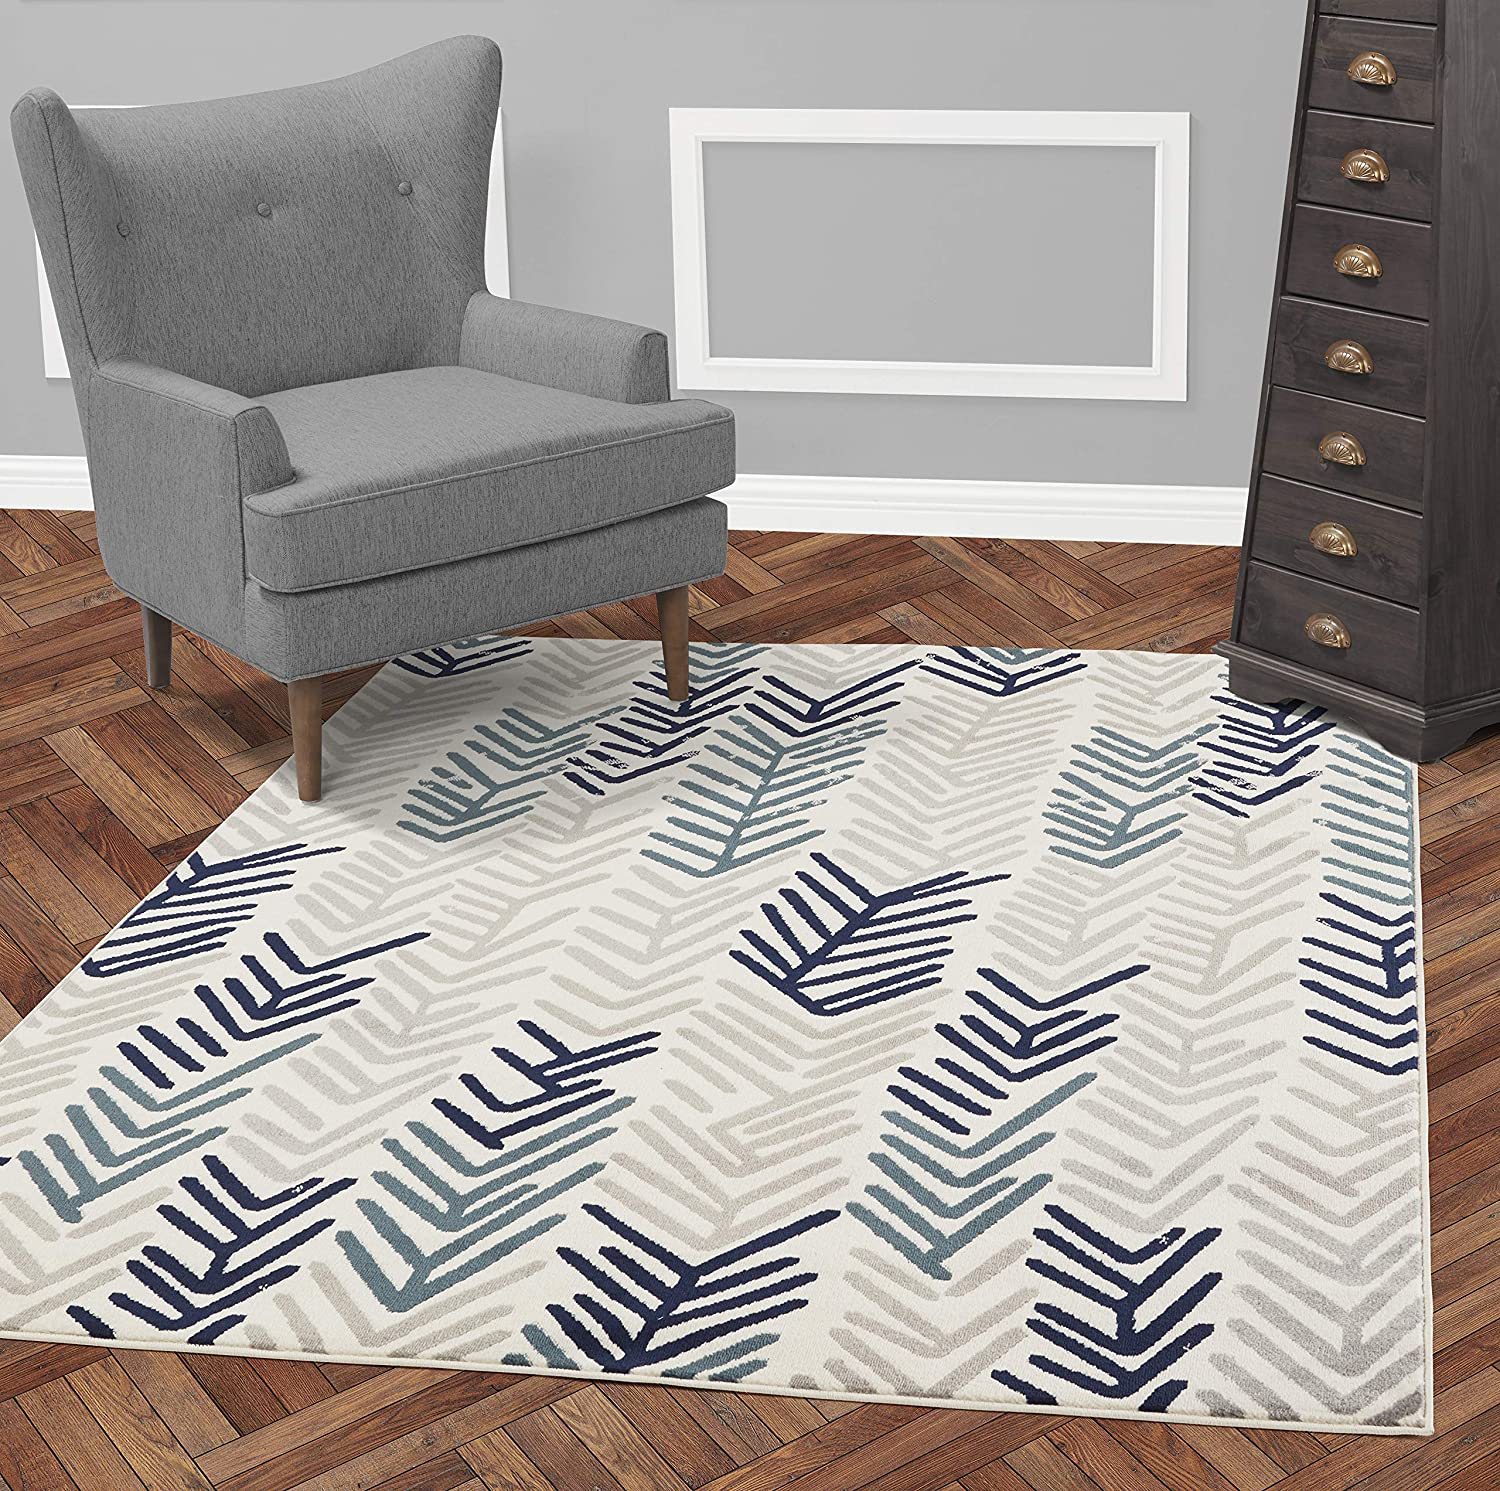 "Diagona Designs Contemporary Floral Design Modern 8' X 10' Area Rug, 94"" W x 118"" L, Ivory/Navy / Gray/Teal"